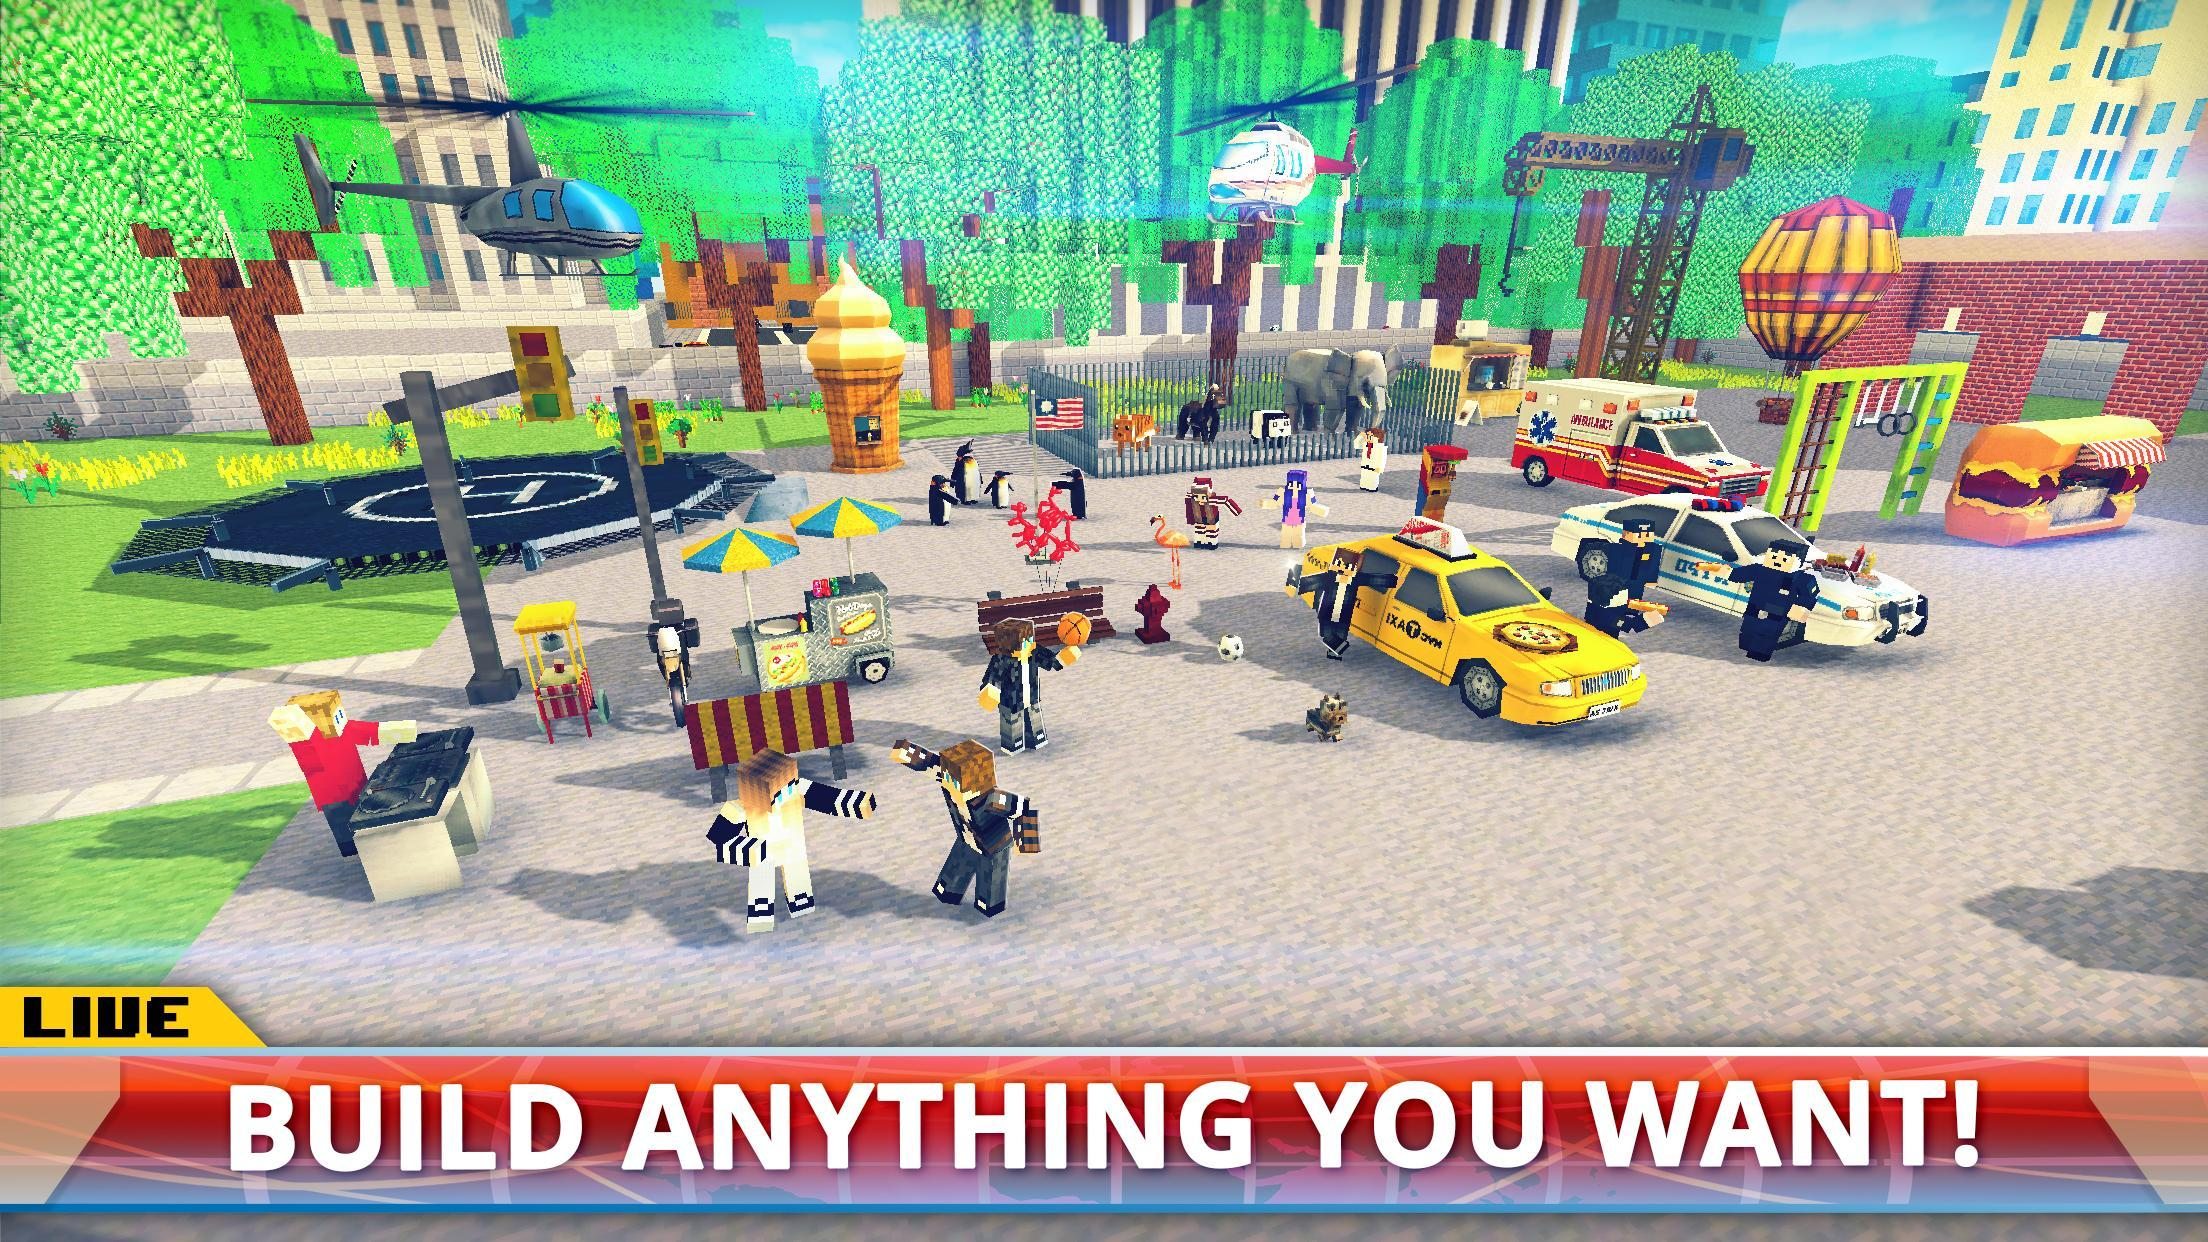 New York City Craft: Blocky NYC Building Game 3D for Android - APK